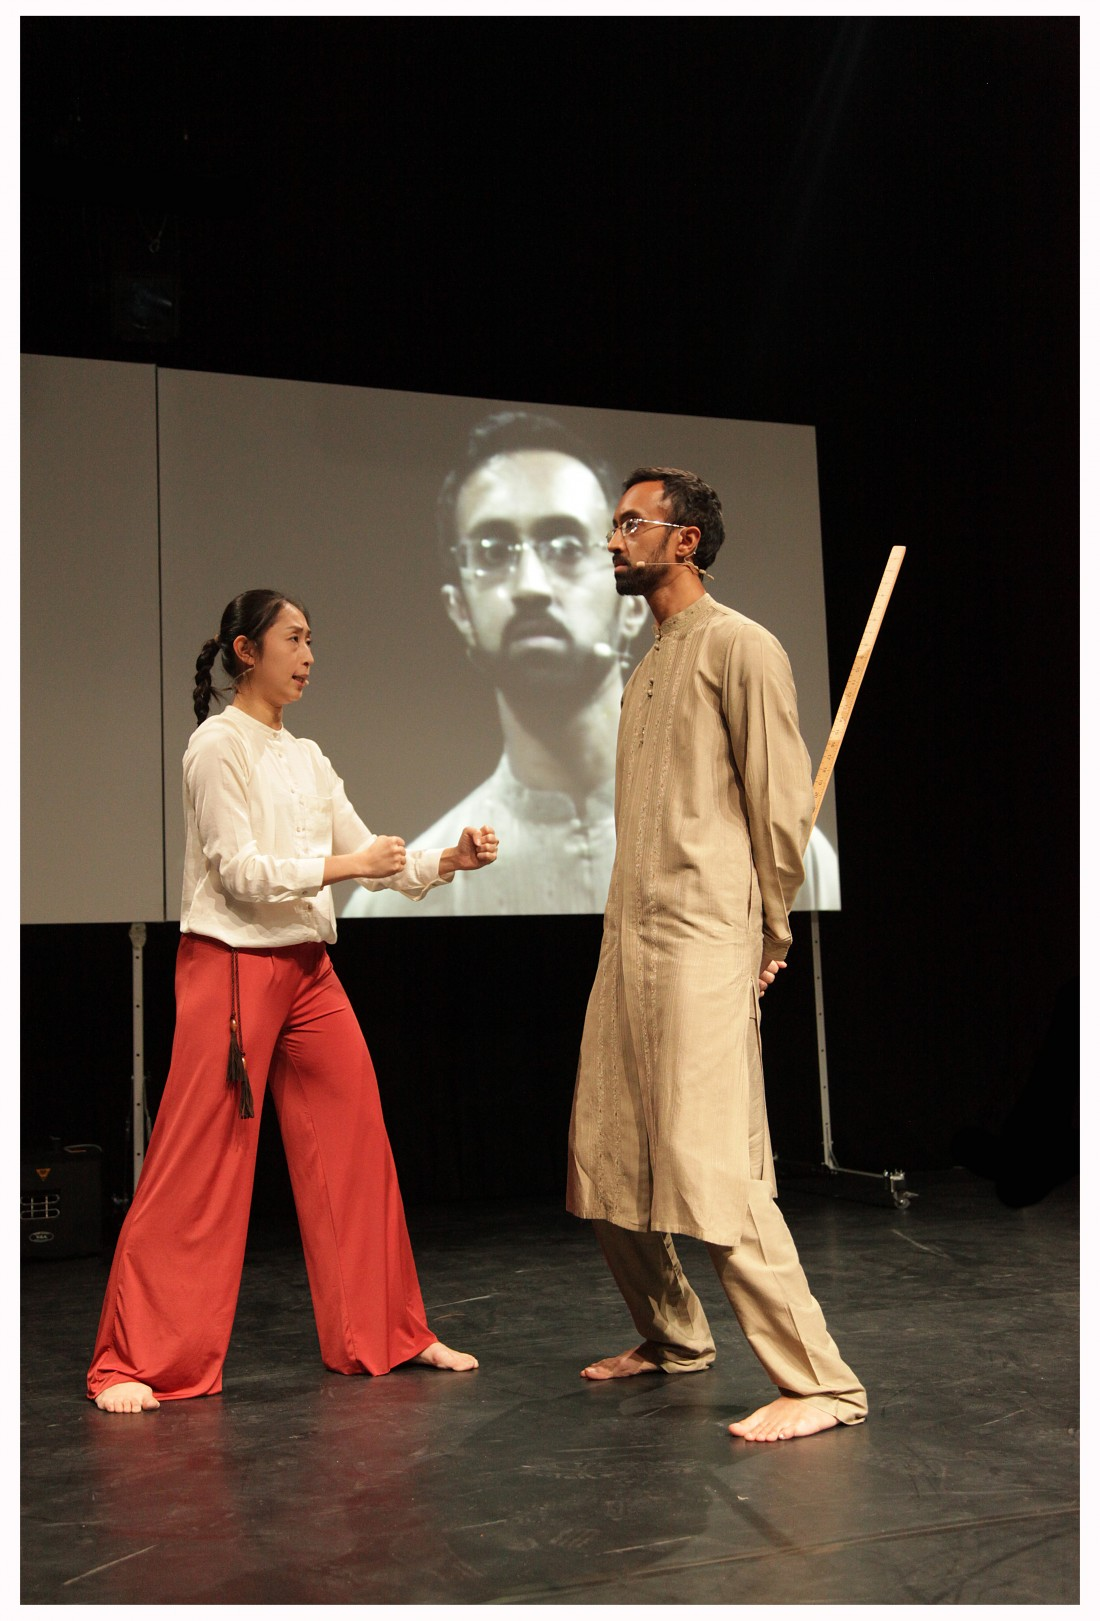 Hetain Patel. 'Be Like Water'. Live at LICA, Lancaster. 8pm. 12 February 2013.